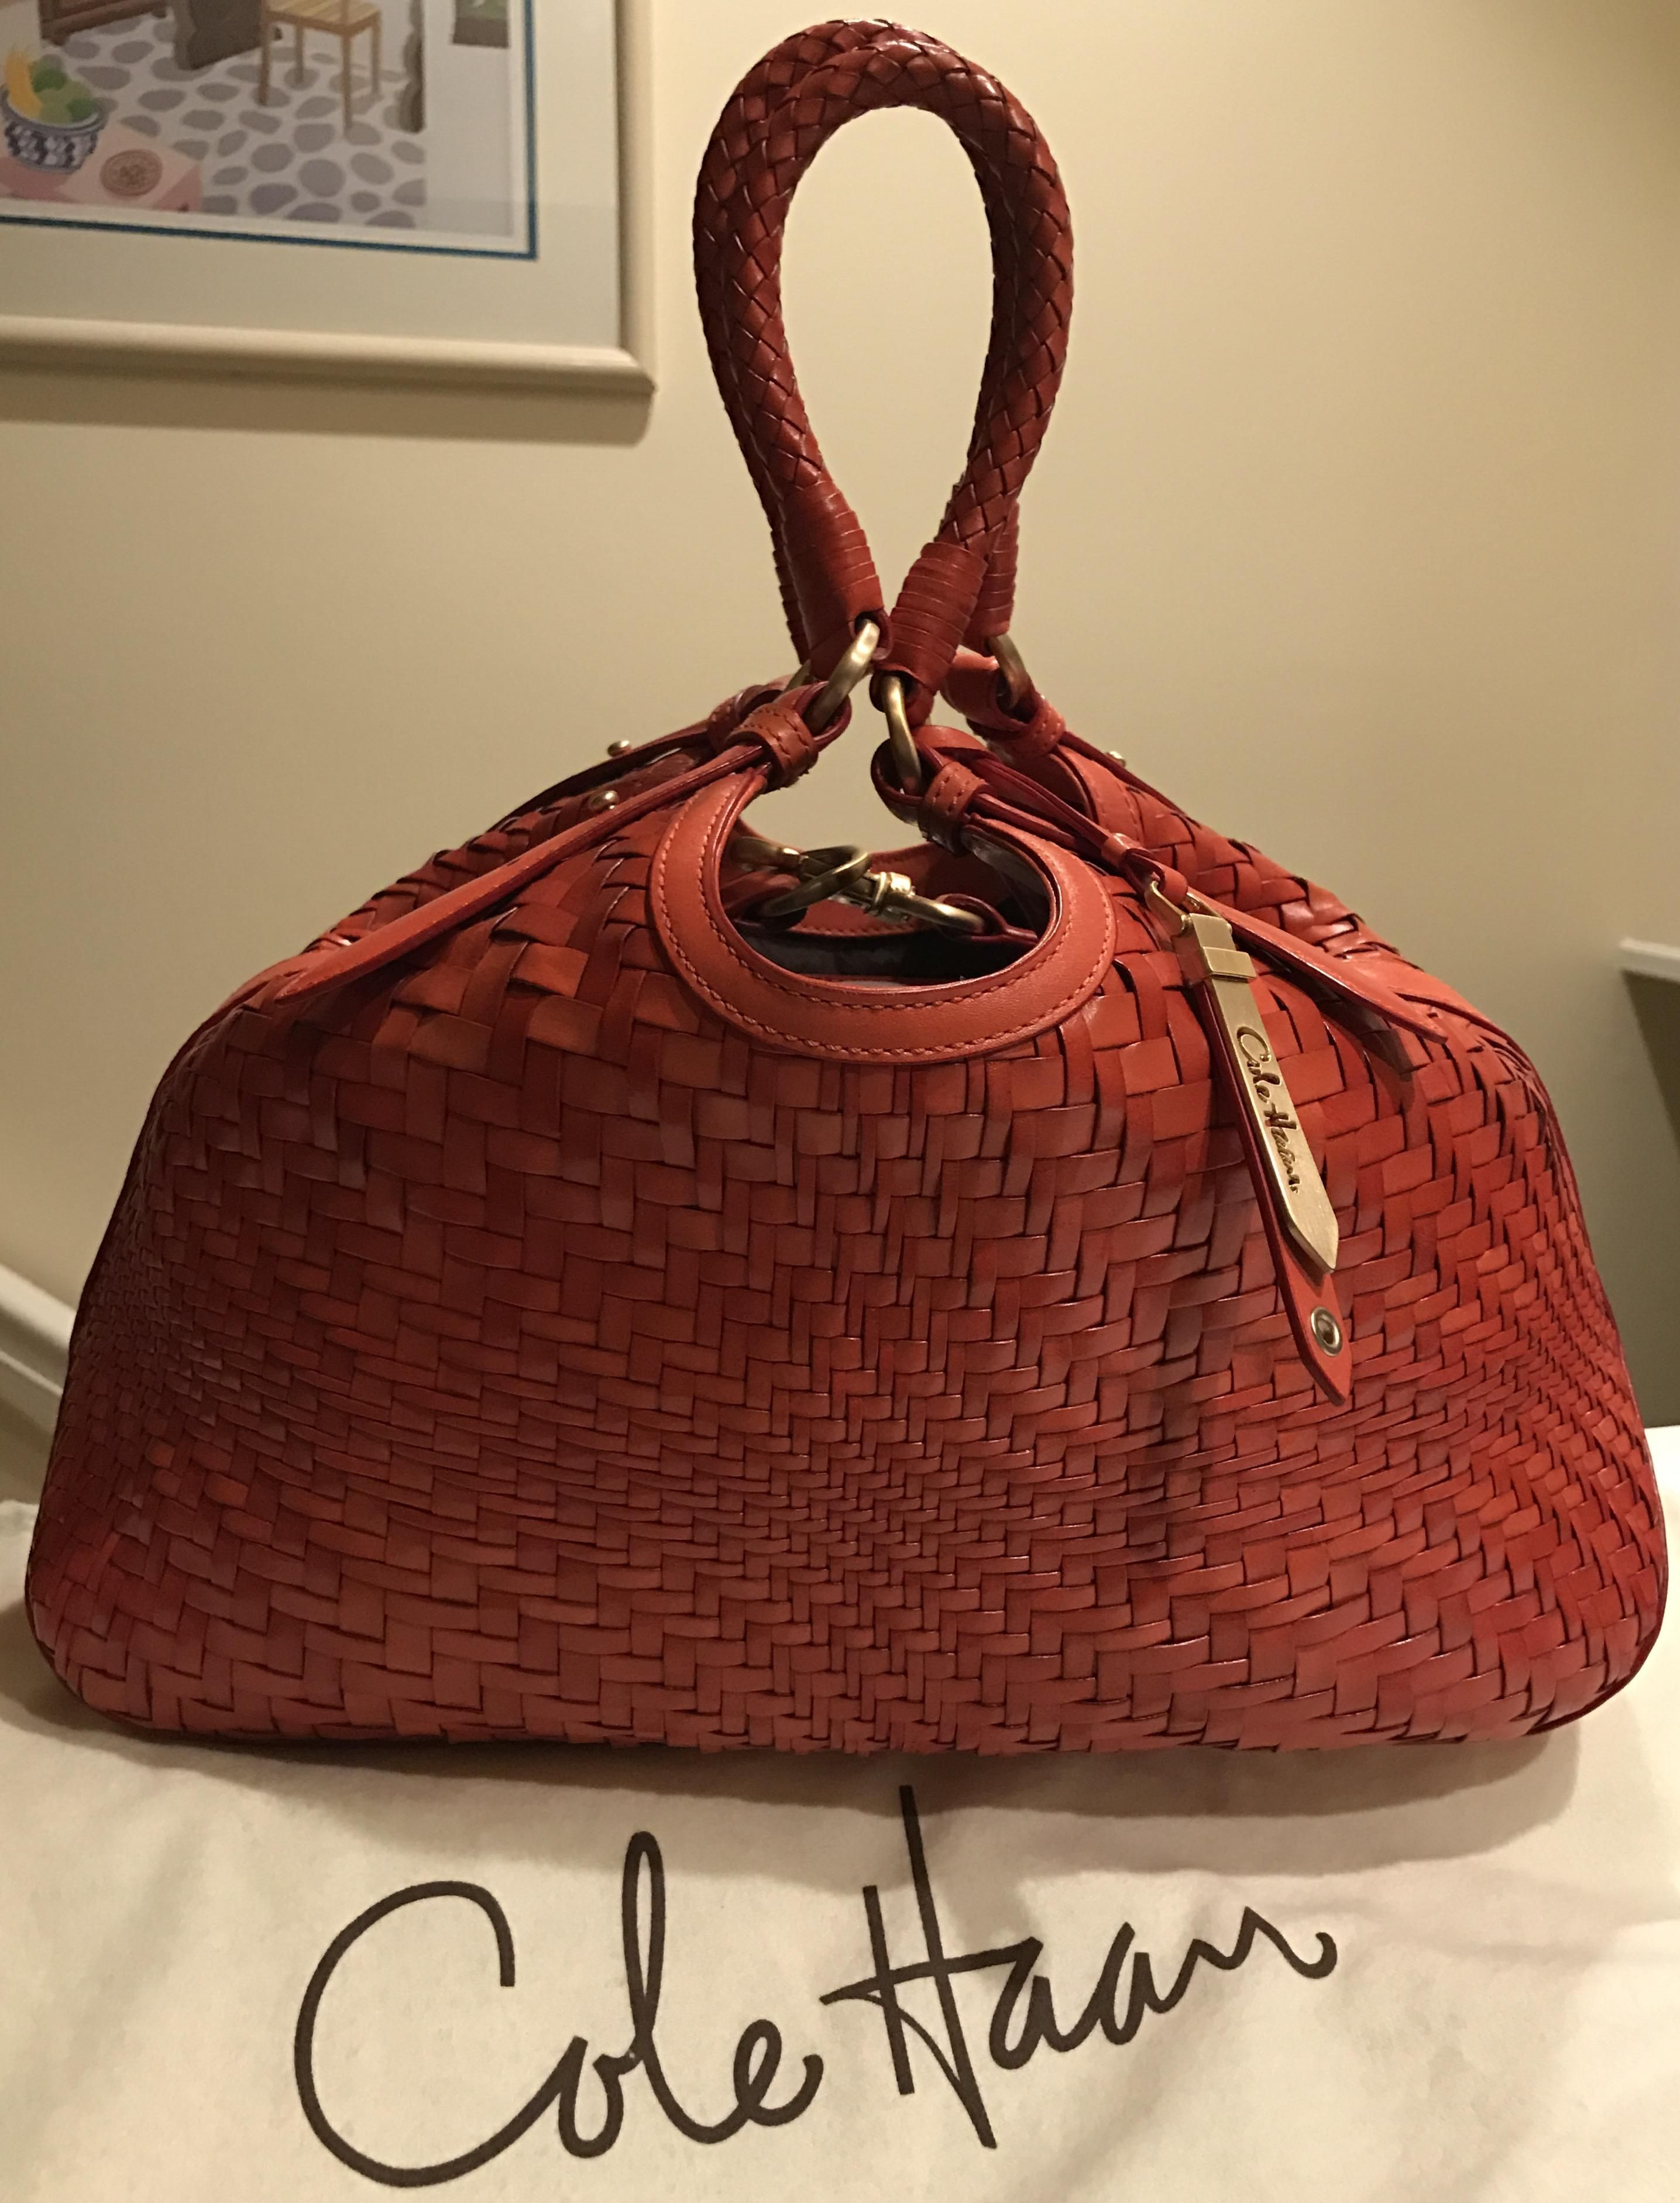 Cole Haan Genevieve Like New! Woven Leather Weave Hobo Satchel Spicy Orange    Red Orange Brown Tote Bag. Get one of the hottest styles of the season! de5e2a3c40c25